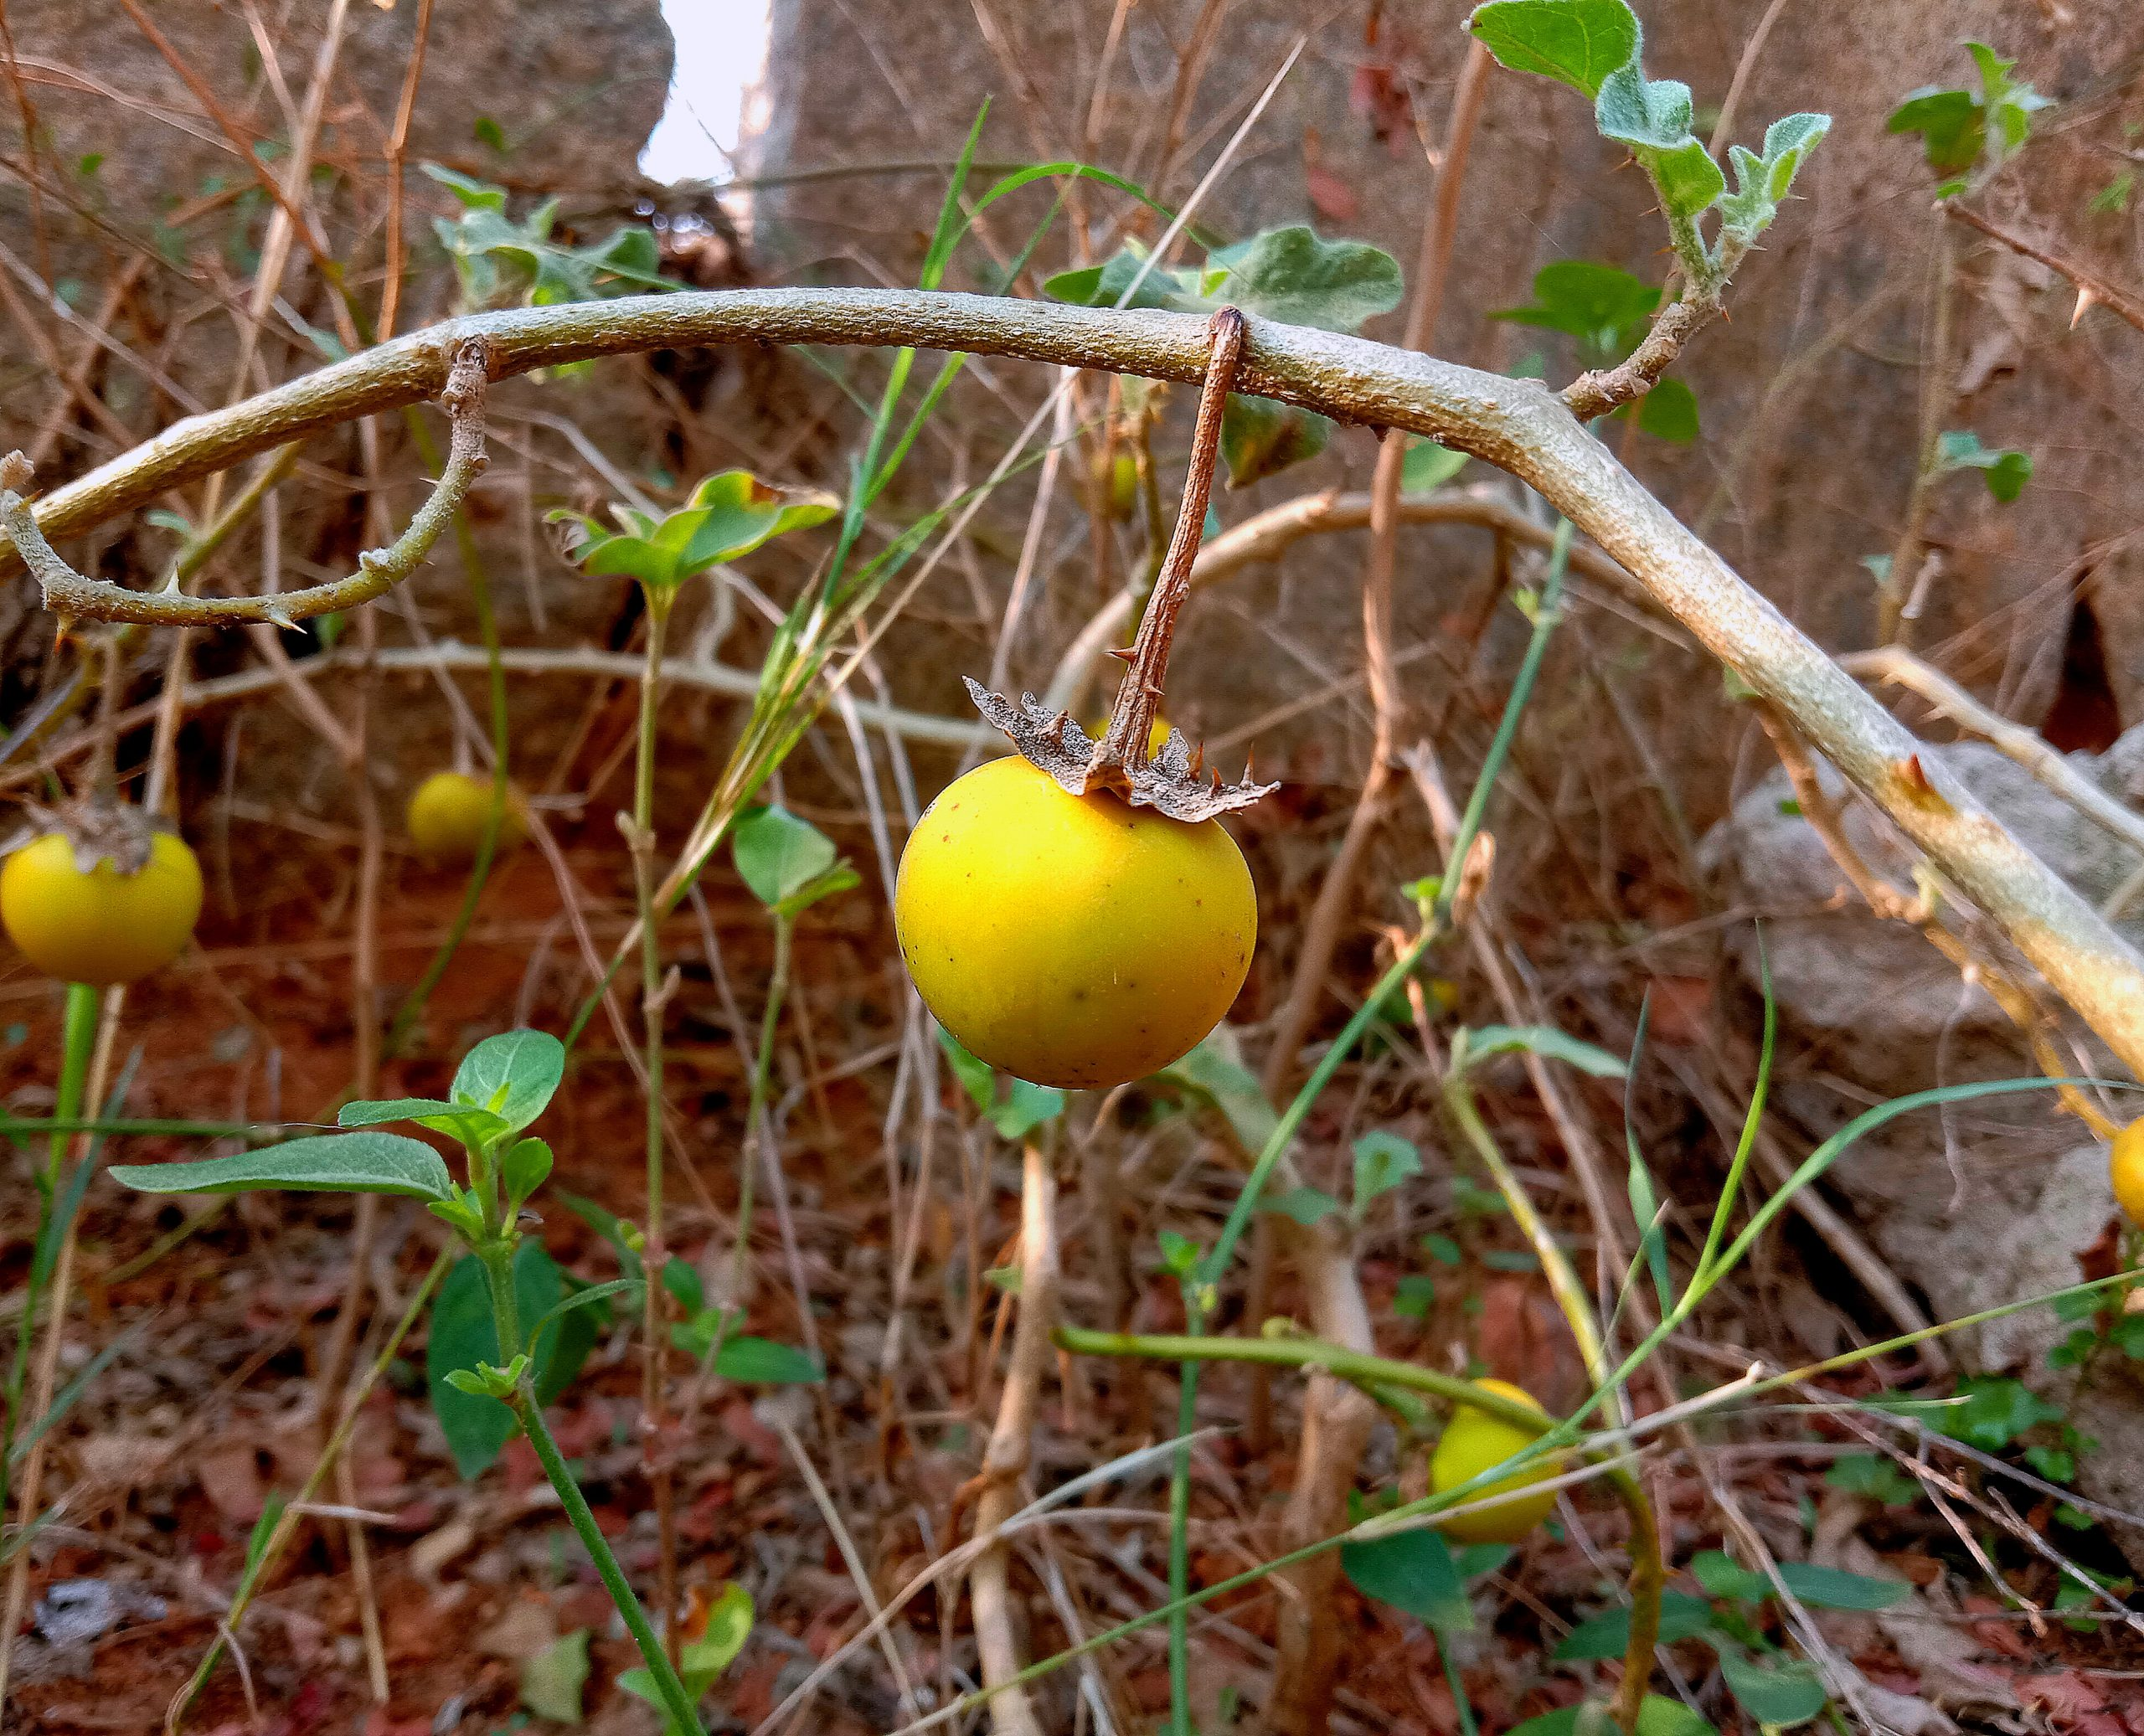 yellow fruit of a plant